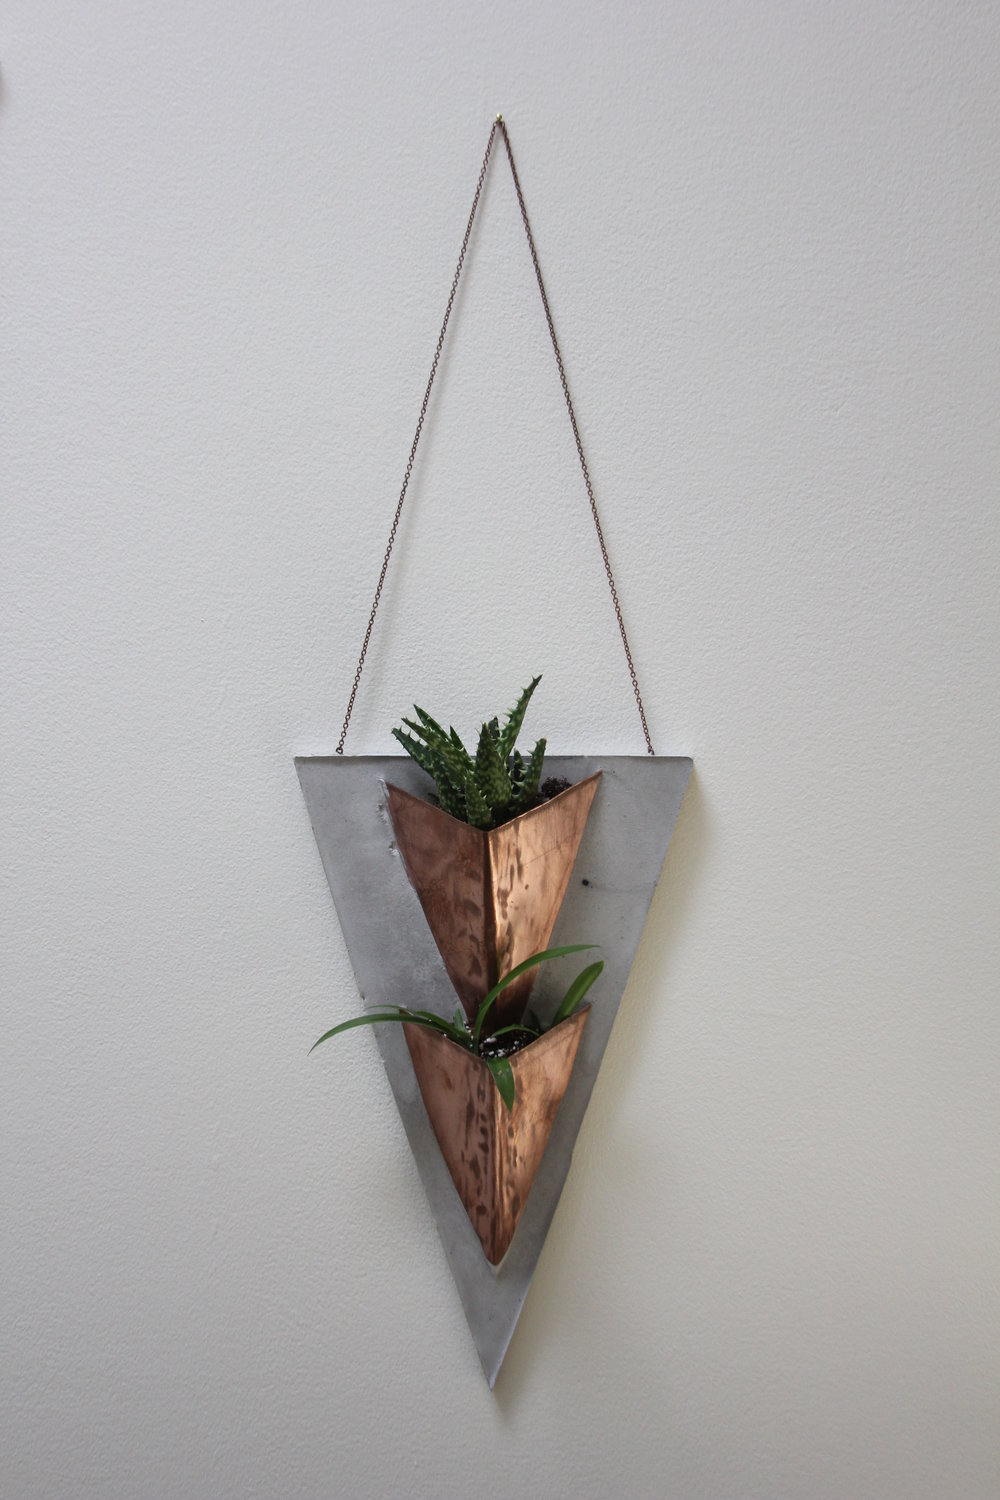 """Ternion II""    Copper + Cement Planter    7"" w x 23"" h    $85 Made to Order"